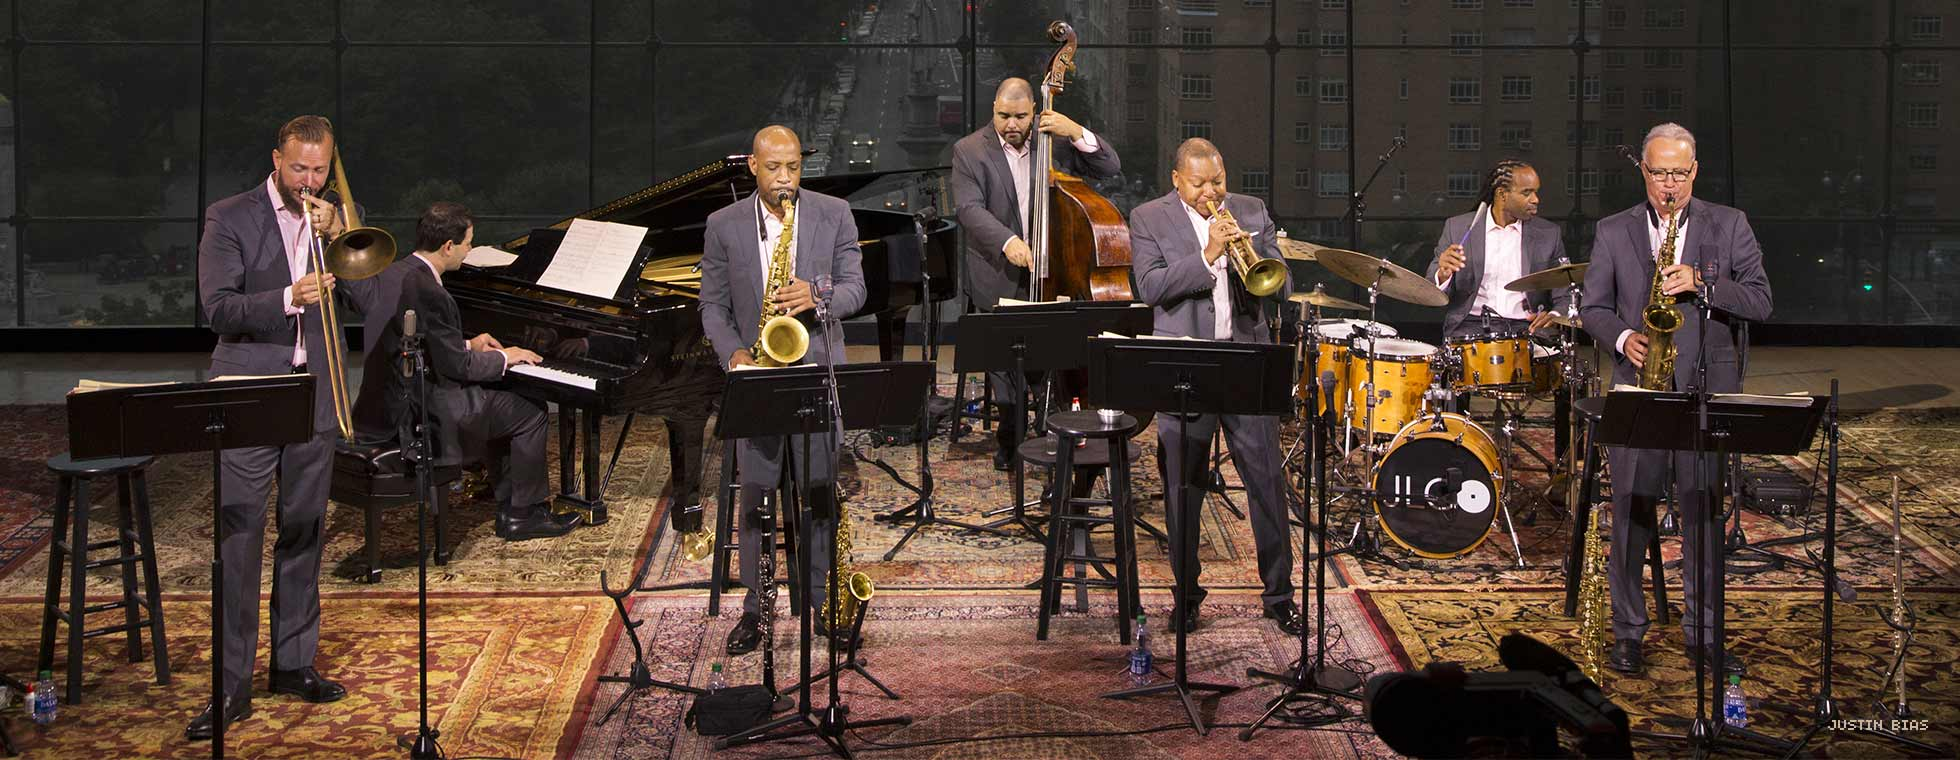 Wynton Marsalis and members of the septet perform in front of a window that overlooks Manhattan.